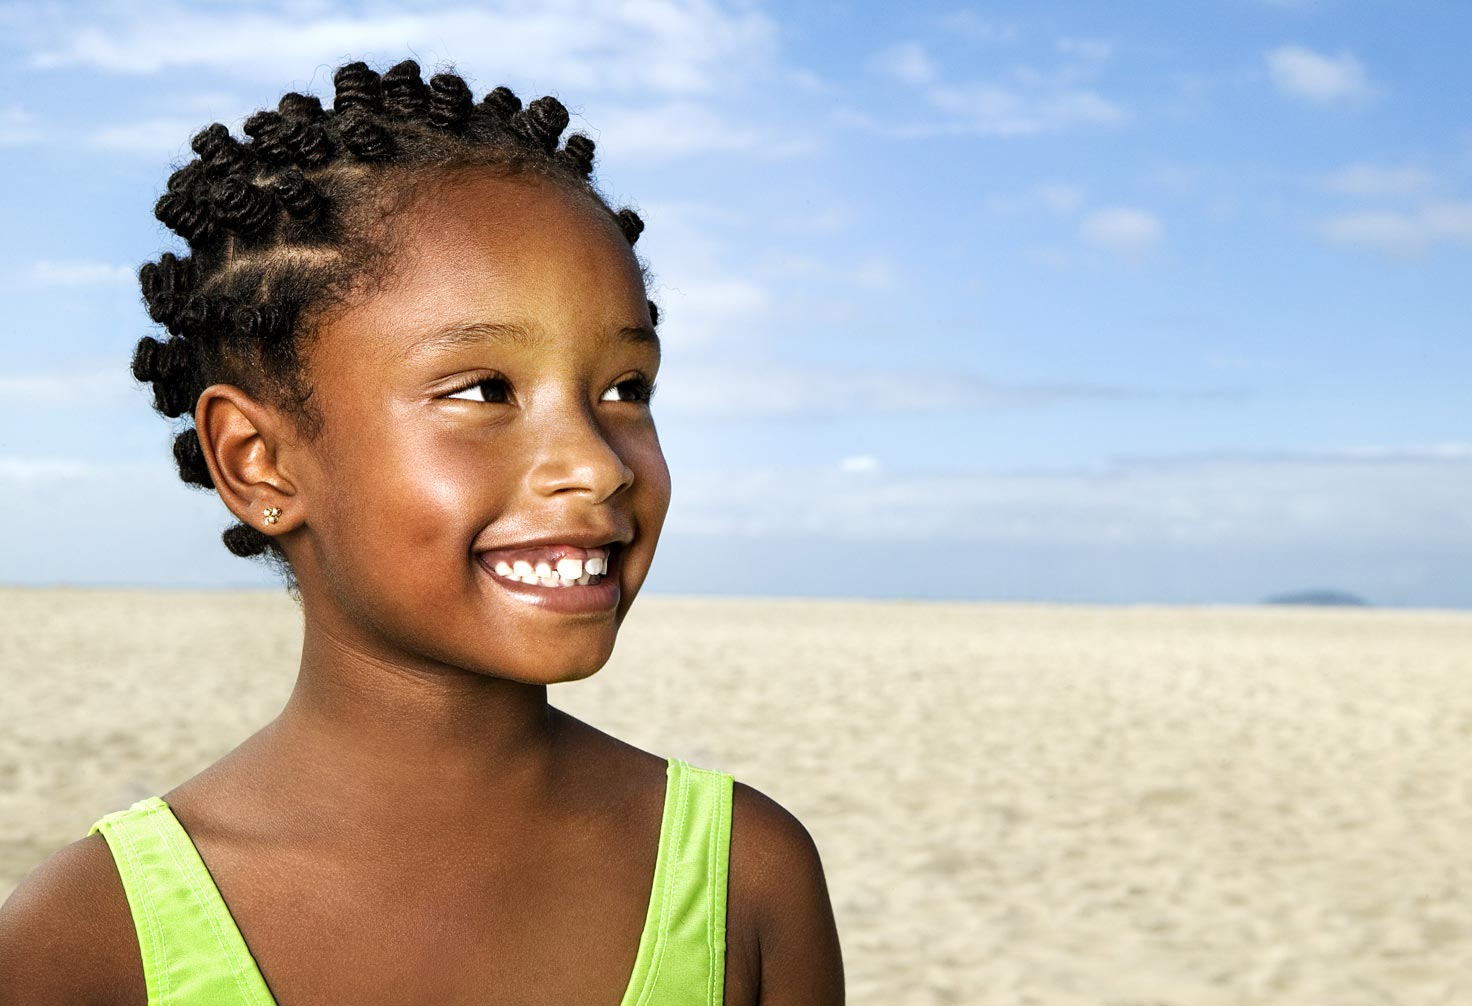 joSon childhood-Portrait of young girl at the beach